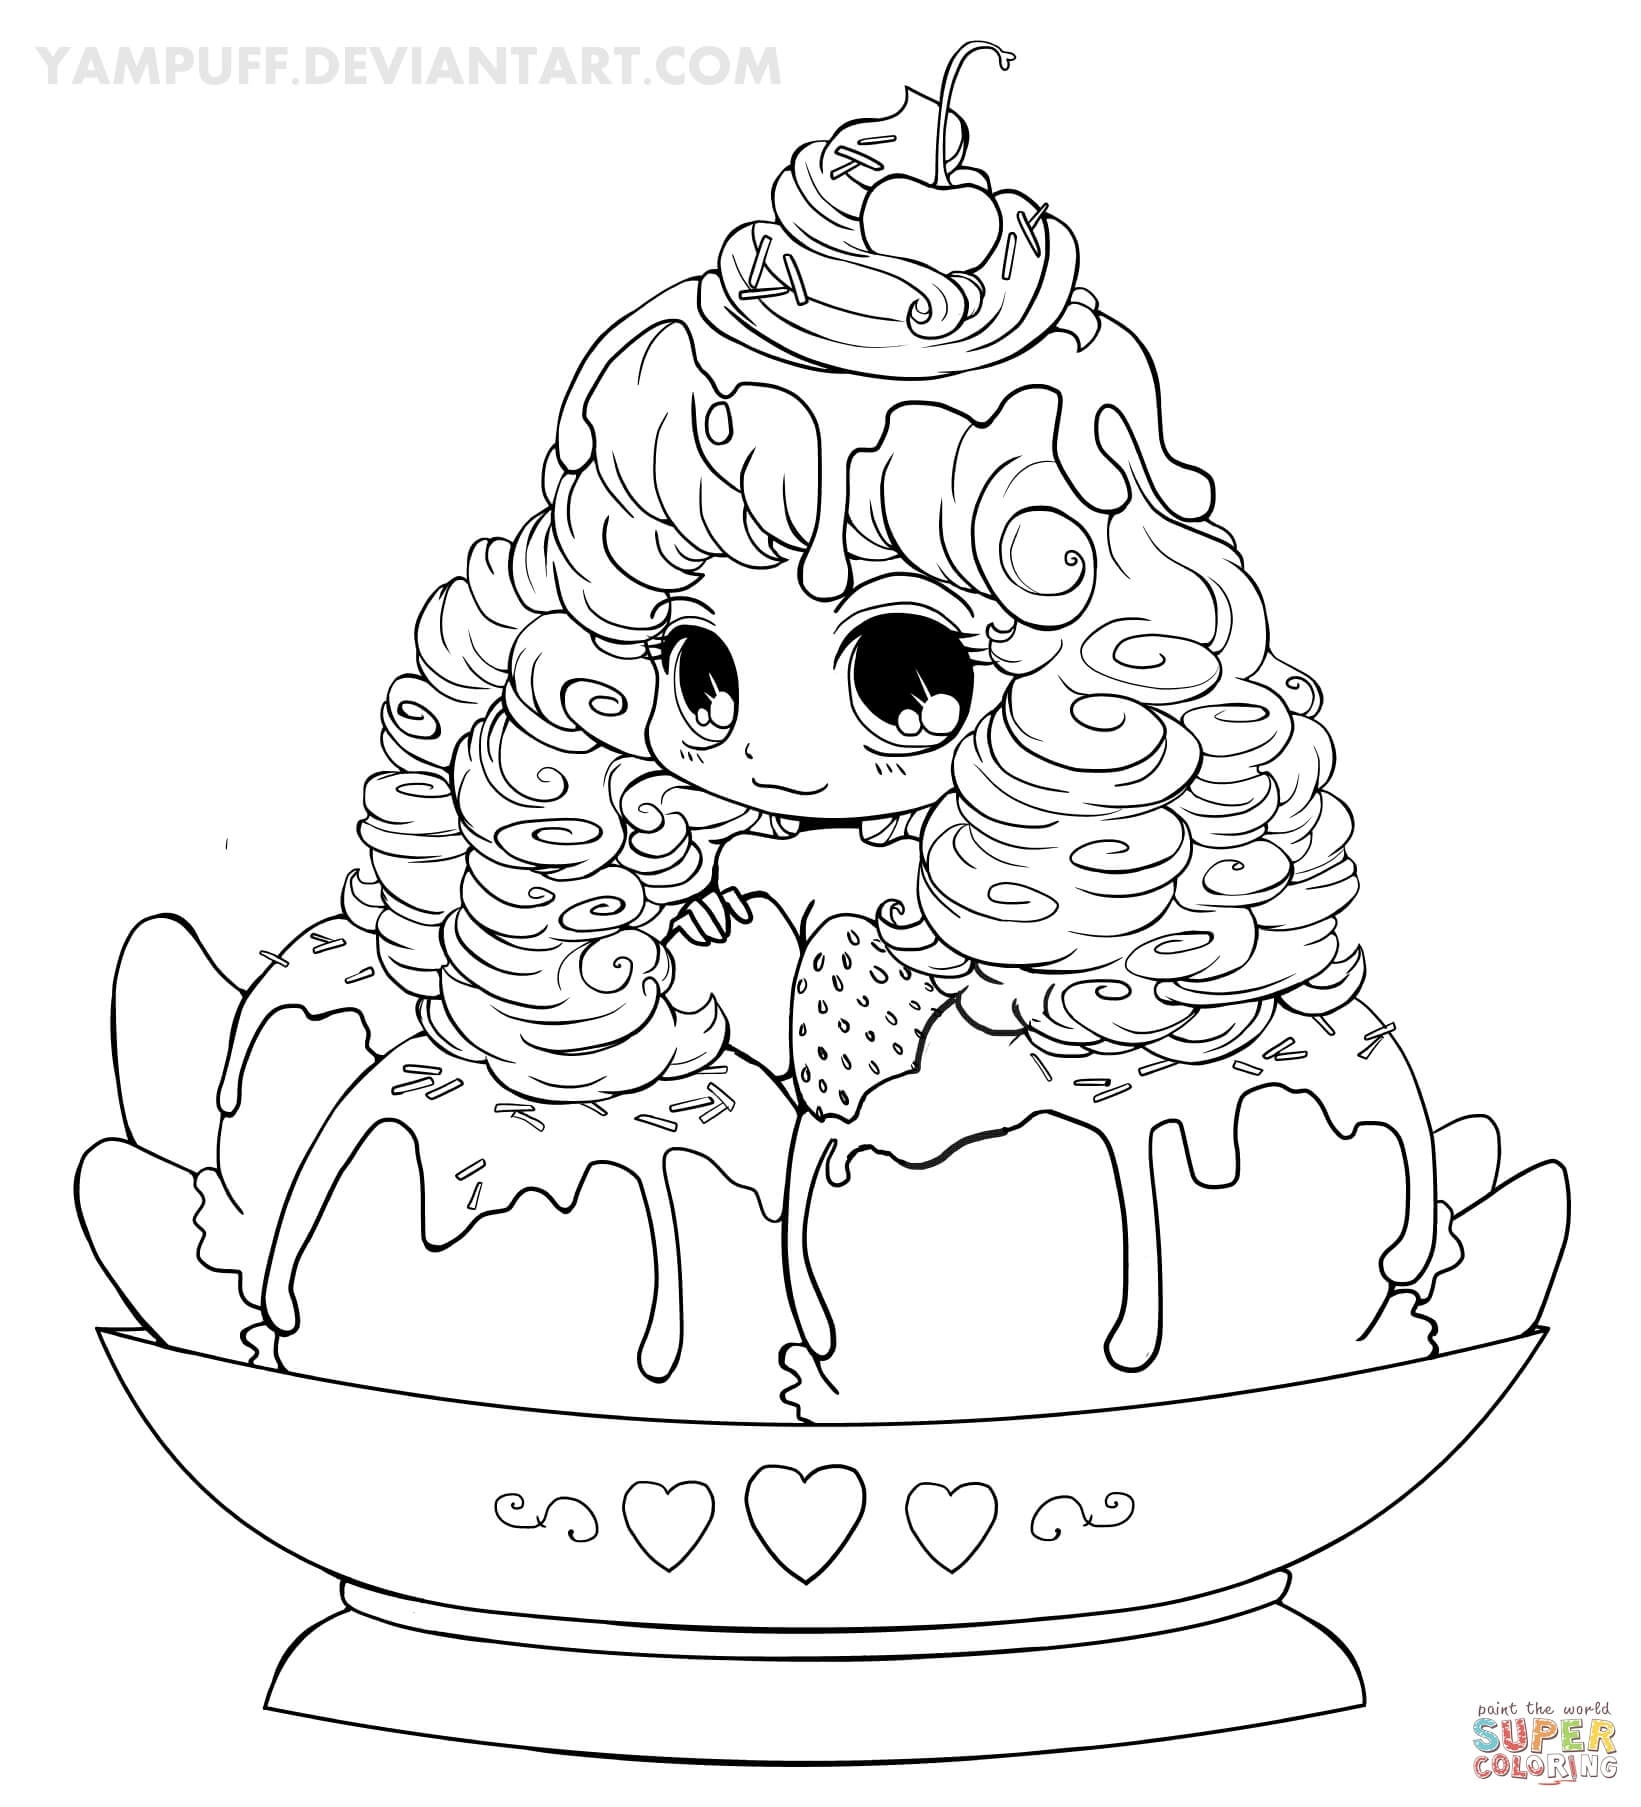 1641x1807 Better Yampuff Food Coloring Pages Chibi Ice Cream Girl Page